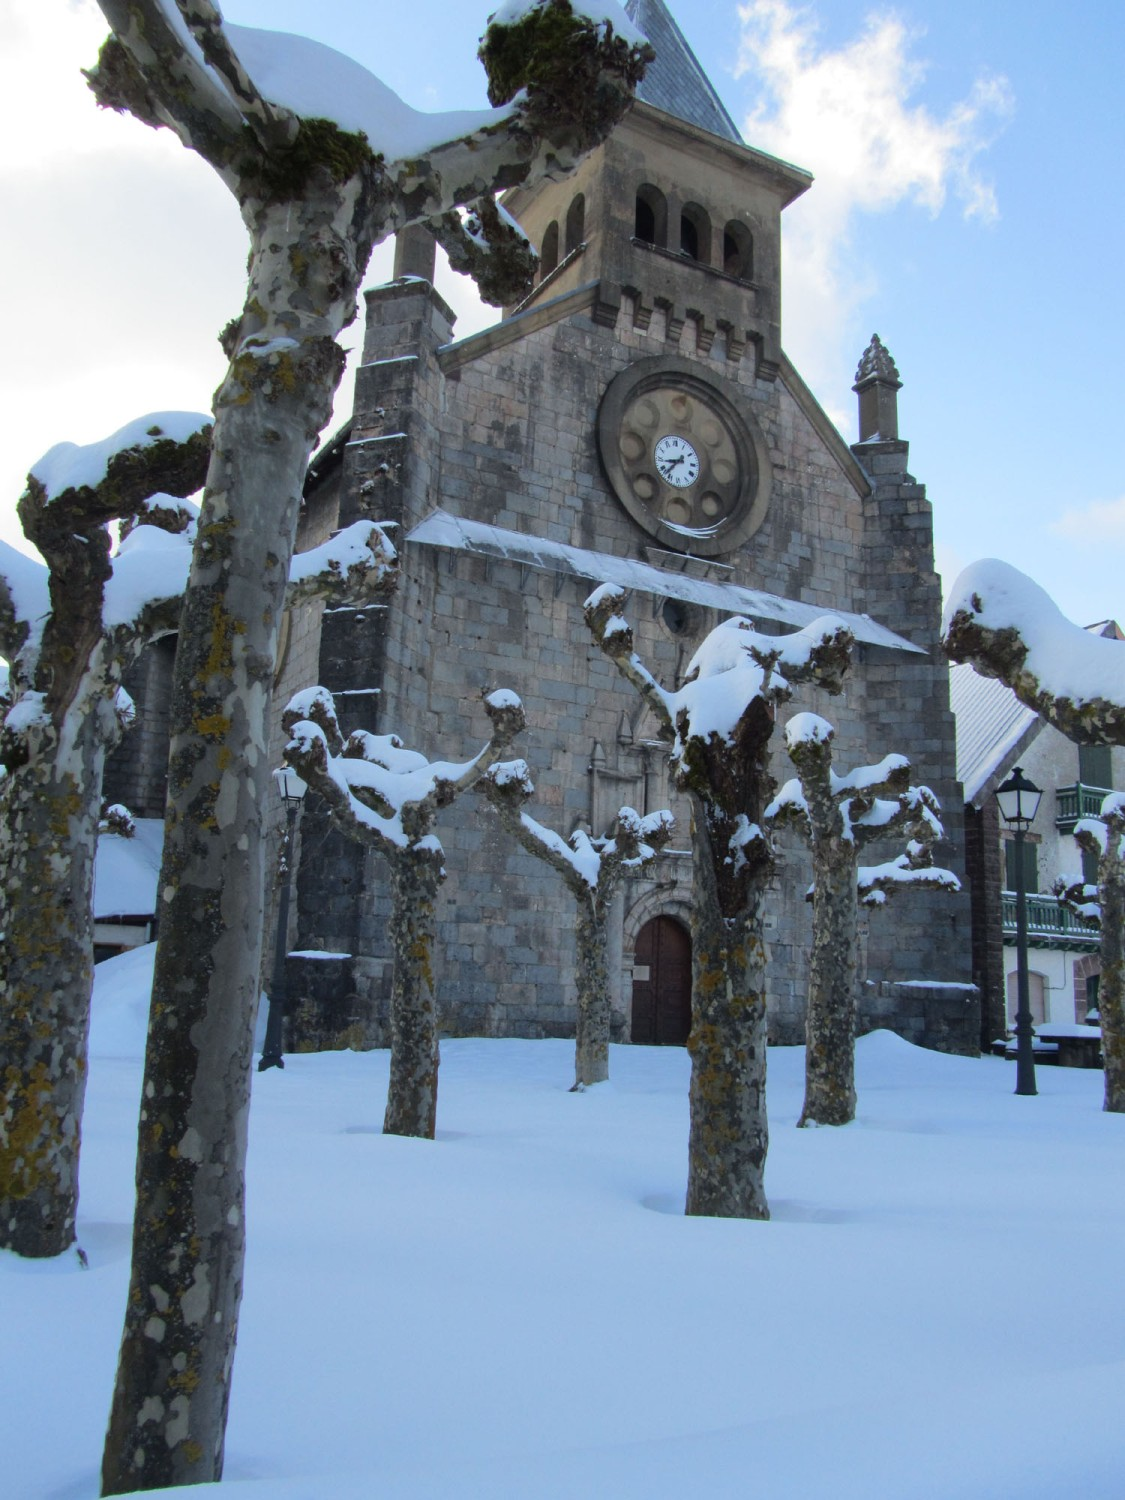 Camino-De-Santiago-Sights-And-Scenery-Roncevalles-Church